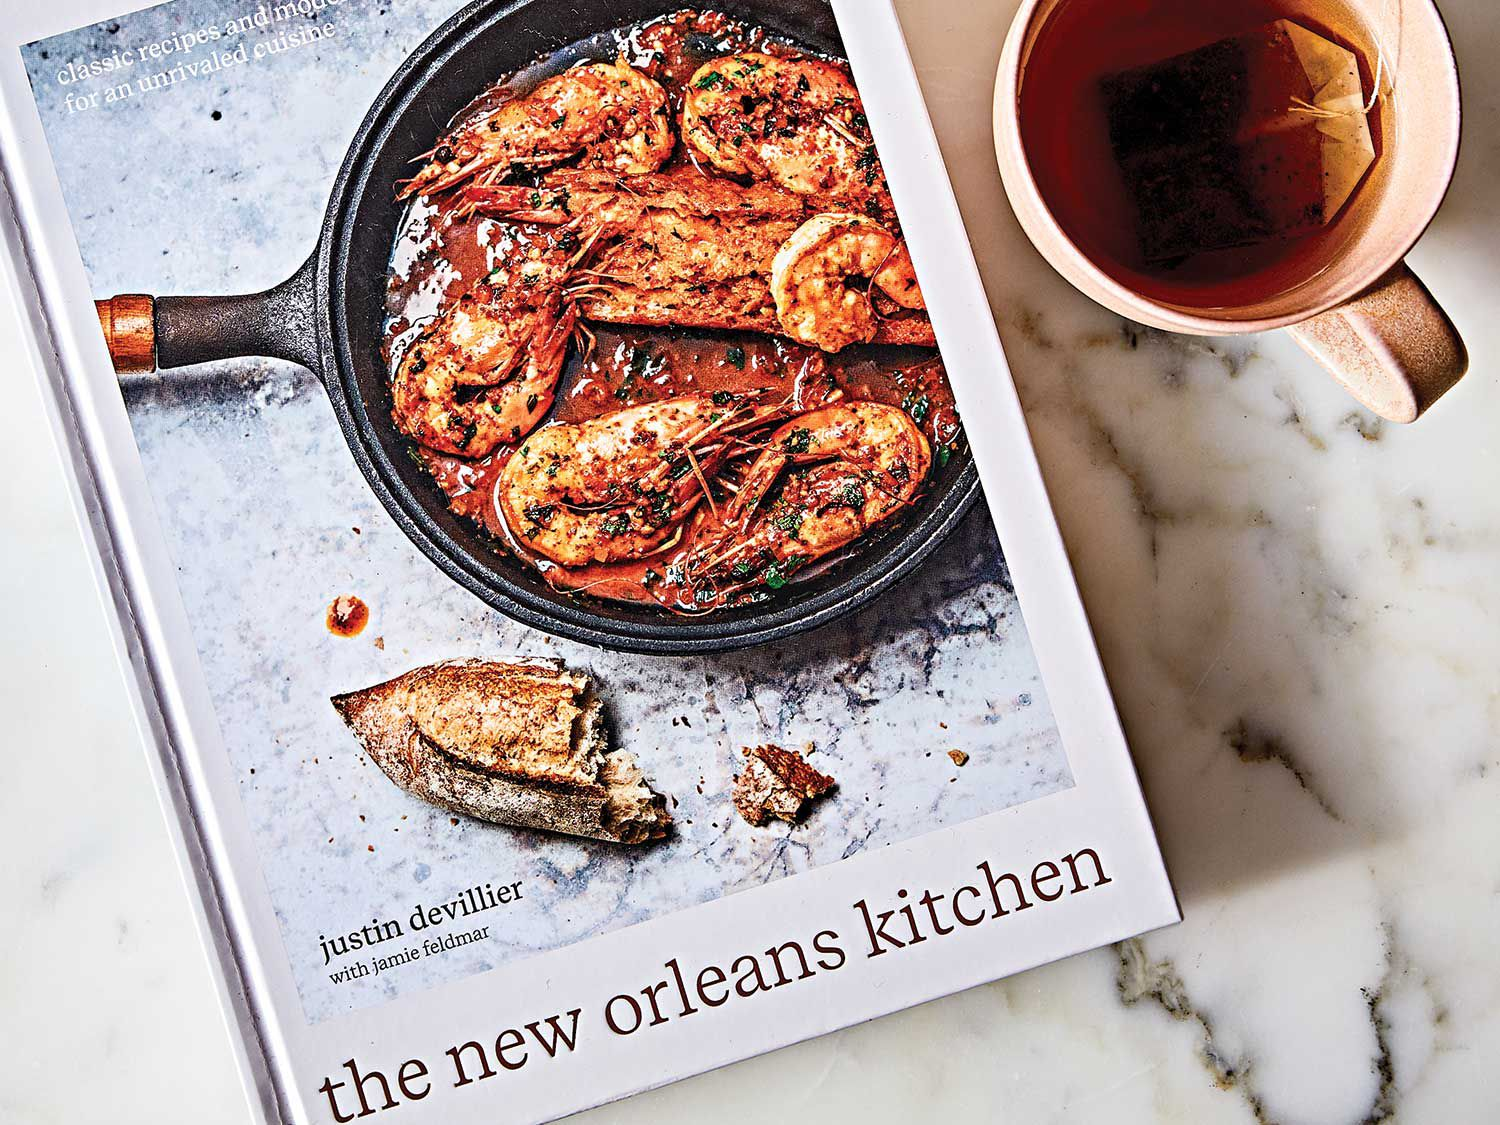 In <em>The New Orleans Chef</em>, Justin Devillier shares three ways to make a roux.